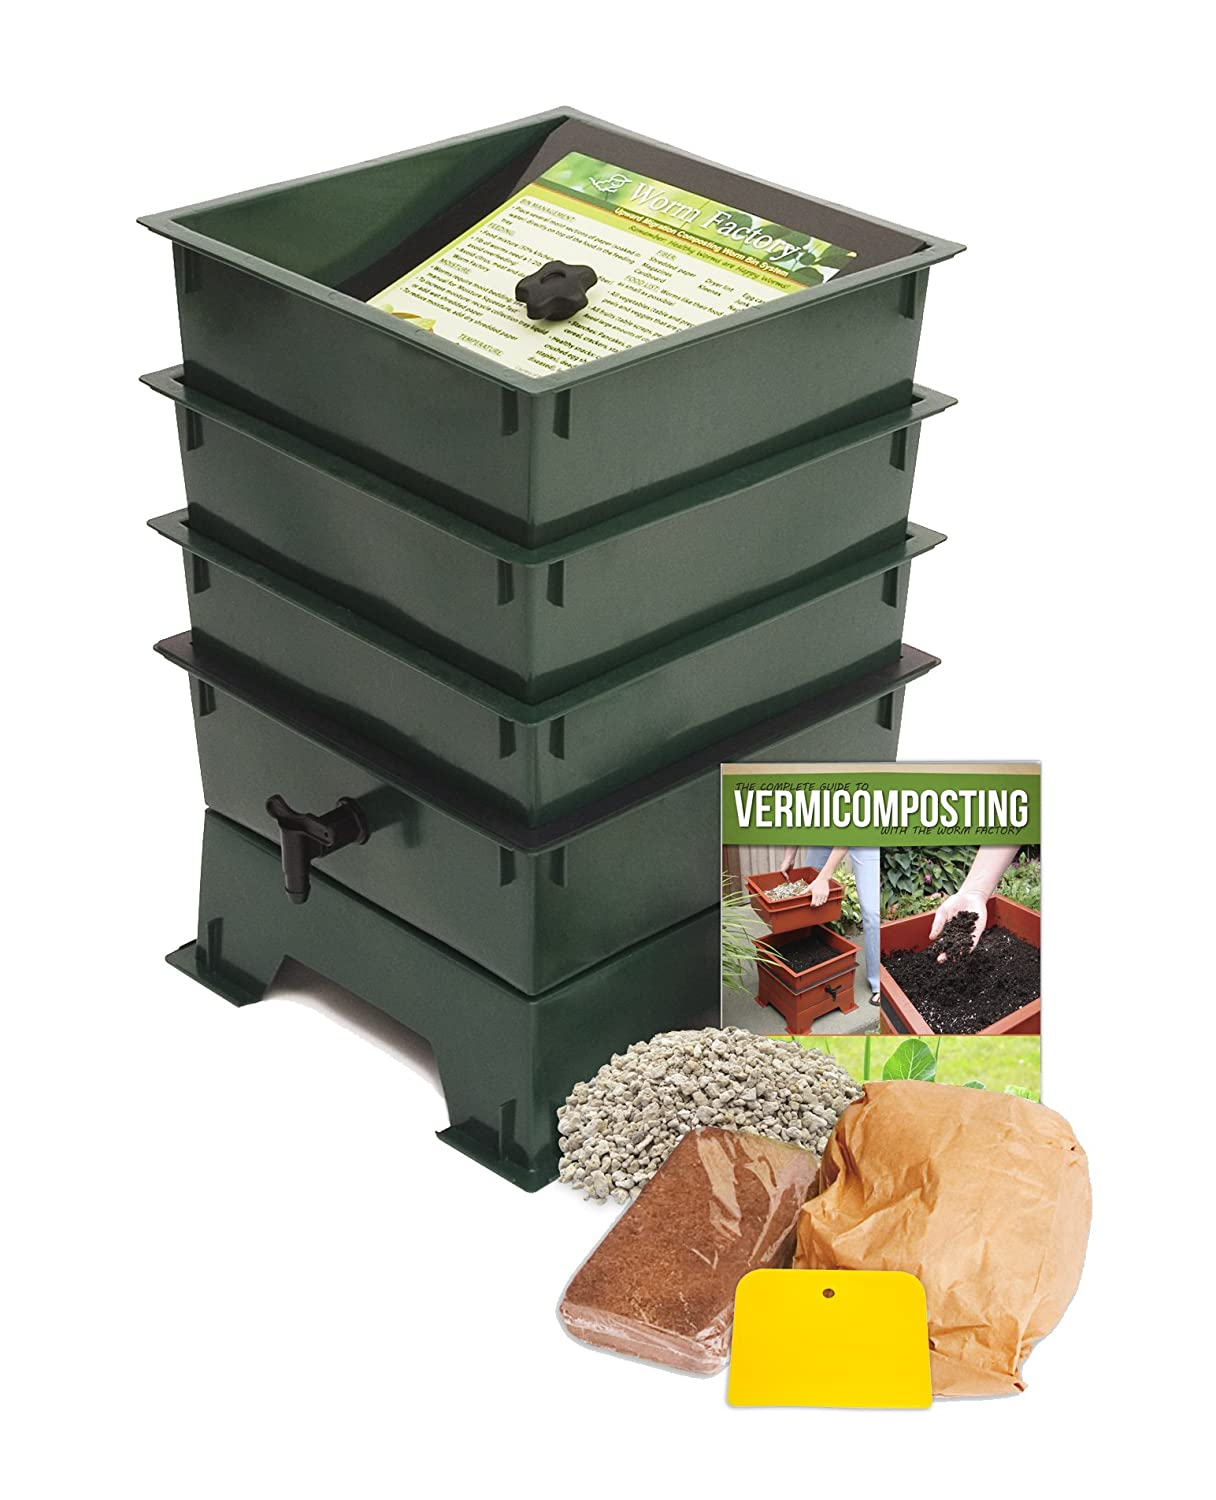 Amazon.com : Worm Factory DS3GT 3 Tray Worm Composter, Green : Outdoor  Composting Bins : Garden U0026 Outdoor